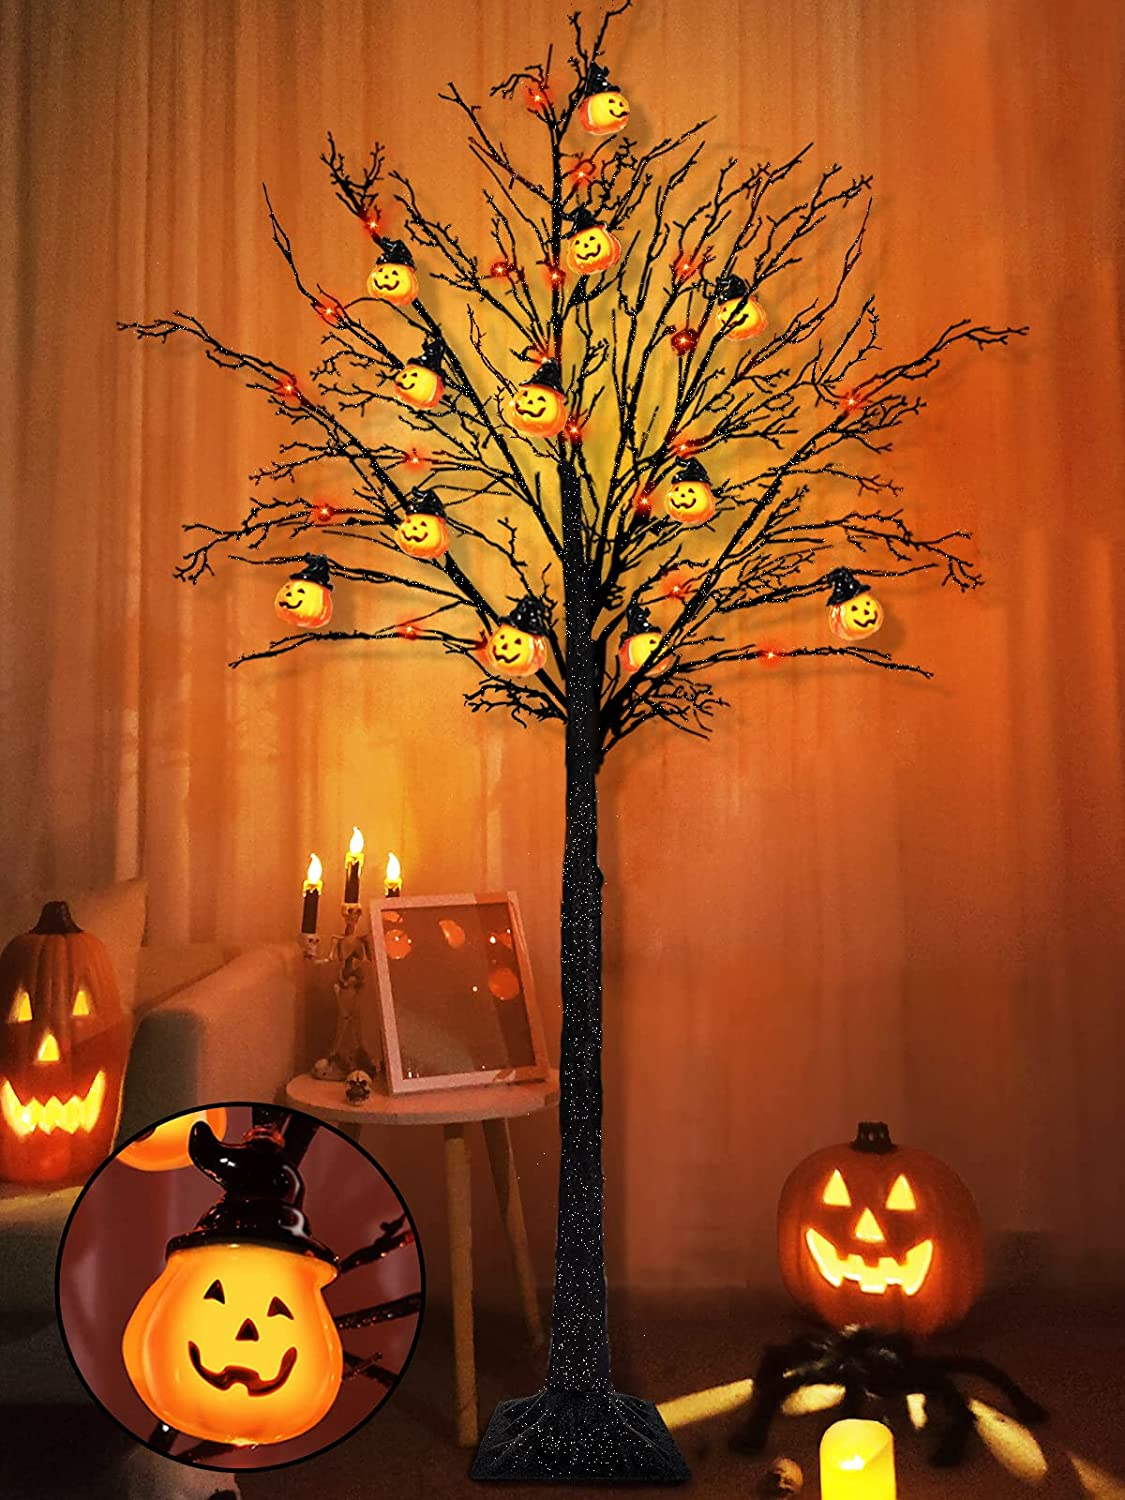 TURNMEON 6 Feet Halloween Black Tree Decorations with Timer Total 96 LED Orange Lights, 24 Jack-O-Lantern Ornaments PumpkinsGlittered Artificial Tree for Indoor Outdoor Garden Yard Holiday Party Home